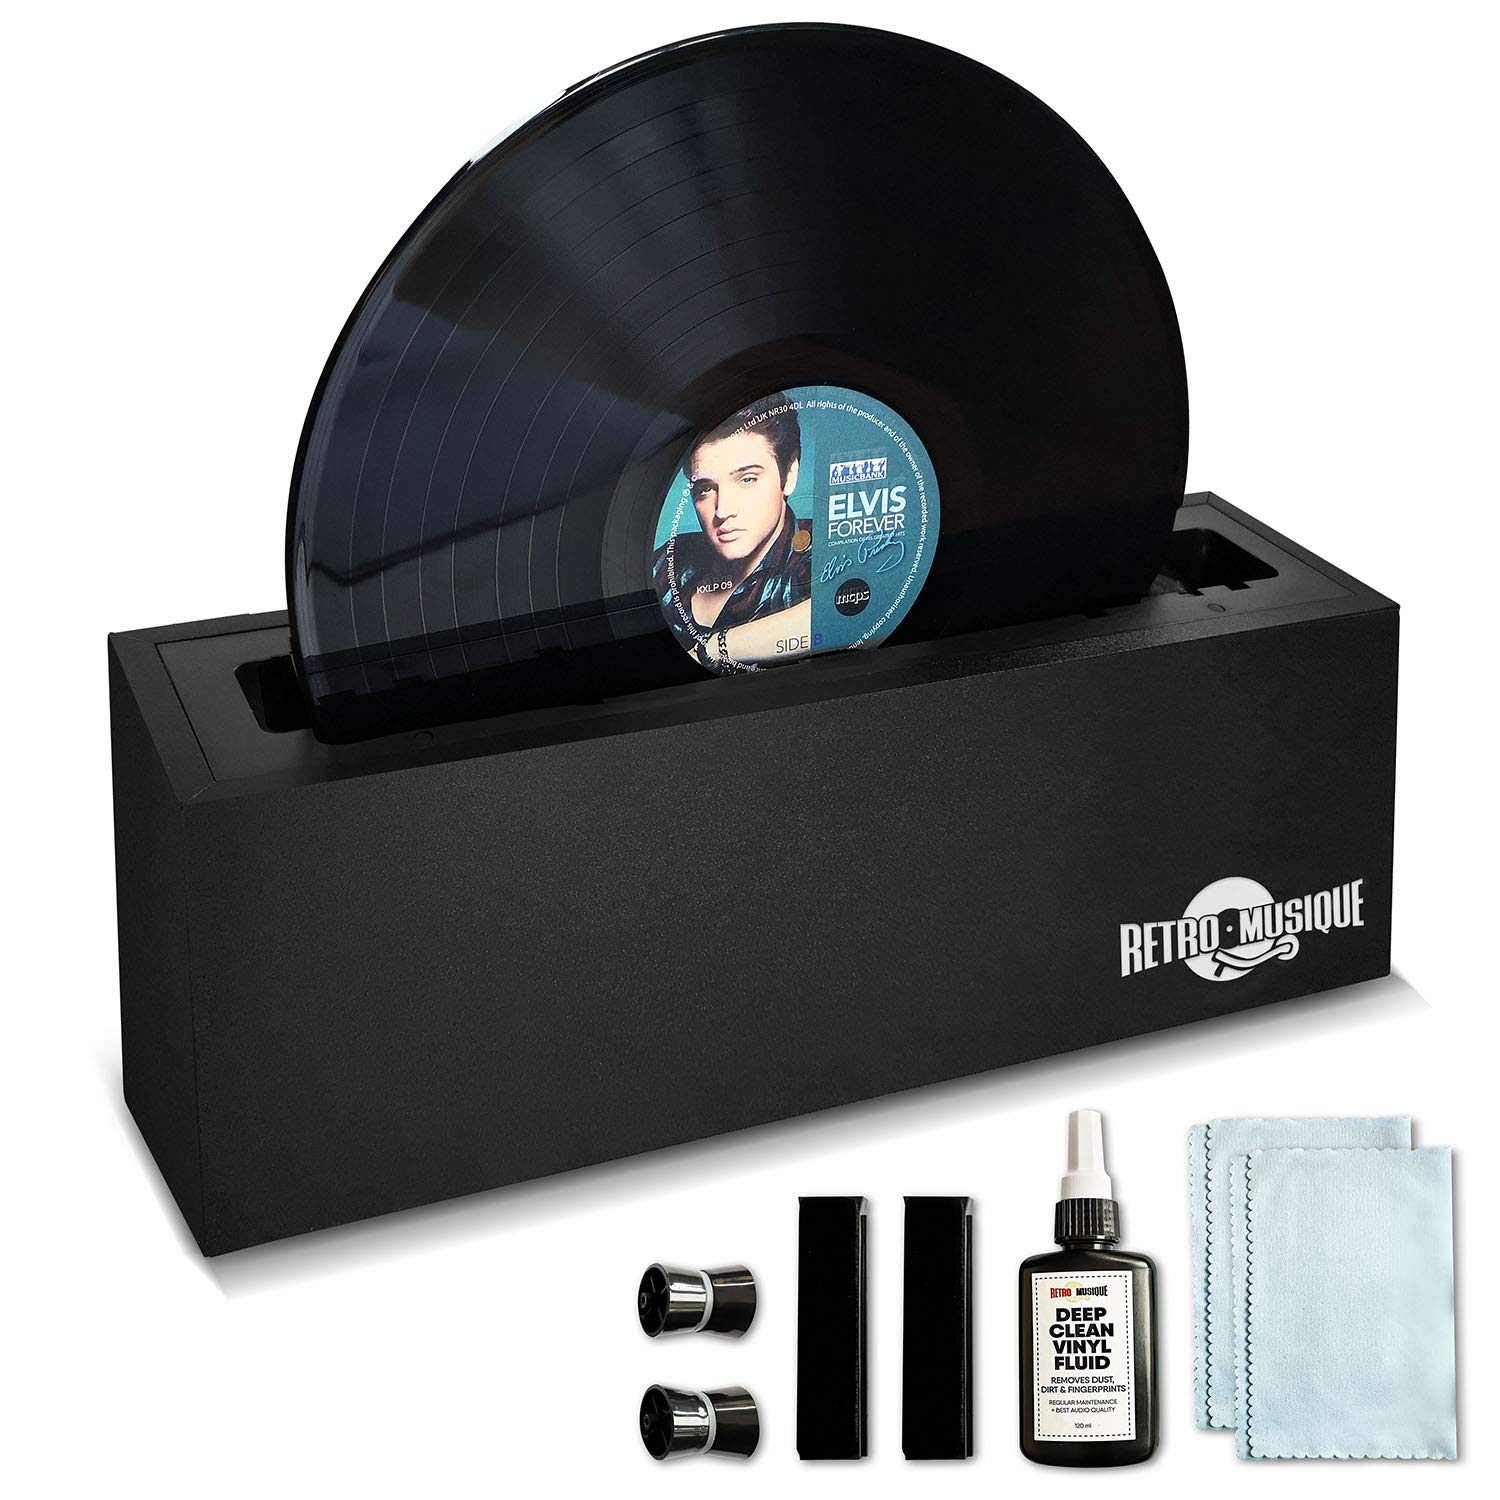 Retro Musique Vinyl Record Cleaning System. Everything you need to clean professionally and restore your albums and EPs.